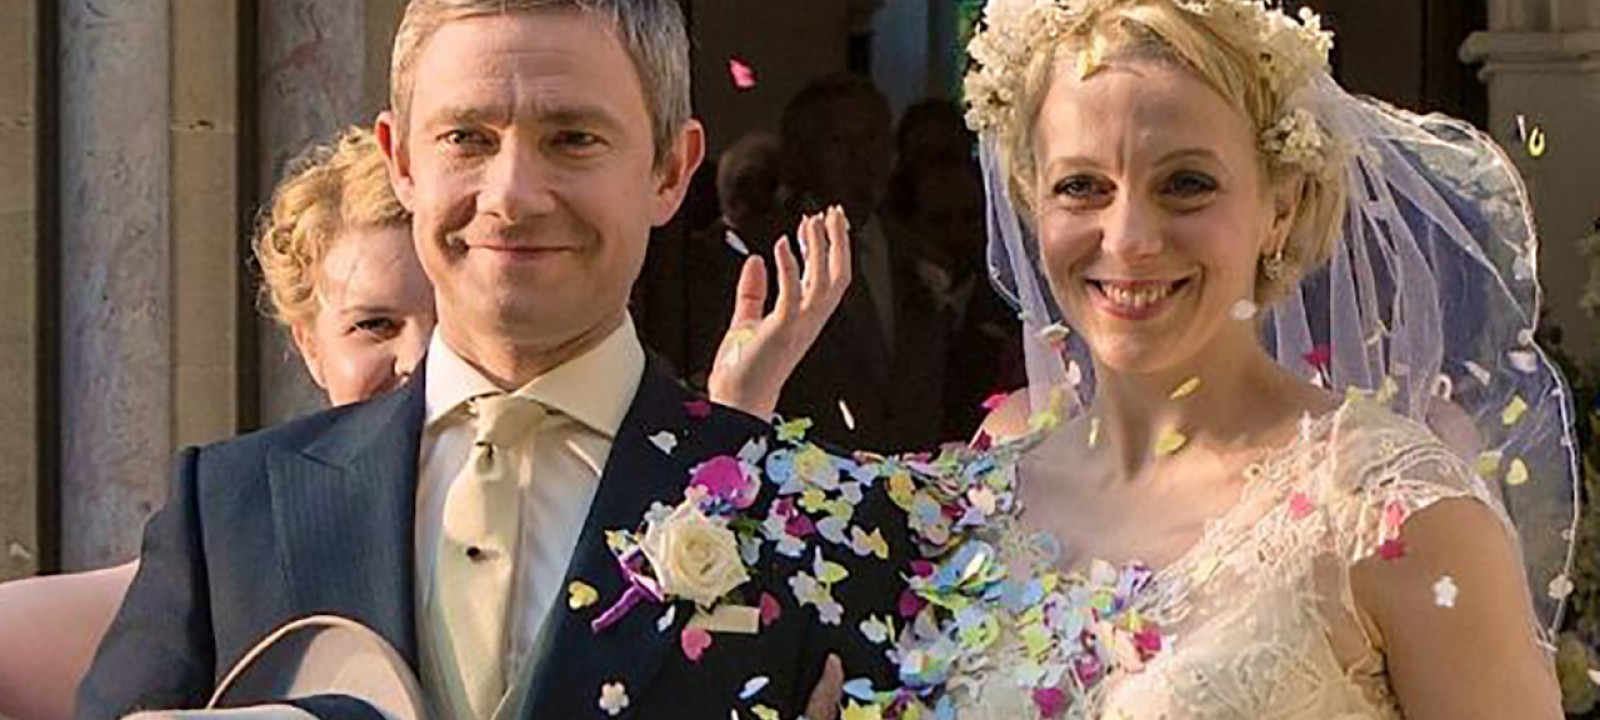 Sherlock, 302 – Martin Freeman, Amanda Abbington and Benedict Cumberbatch